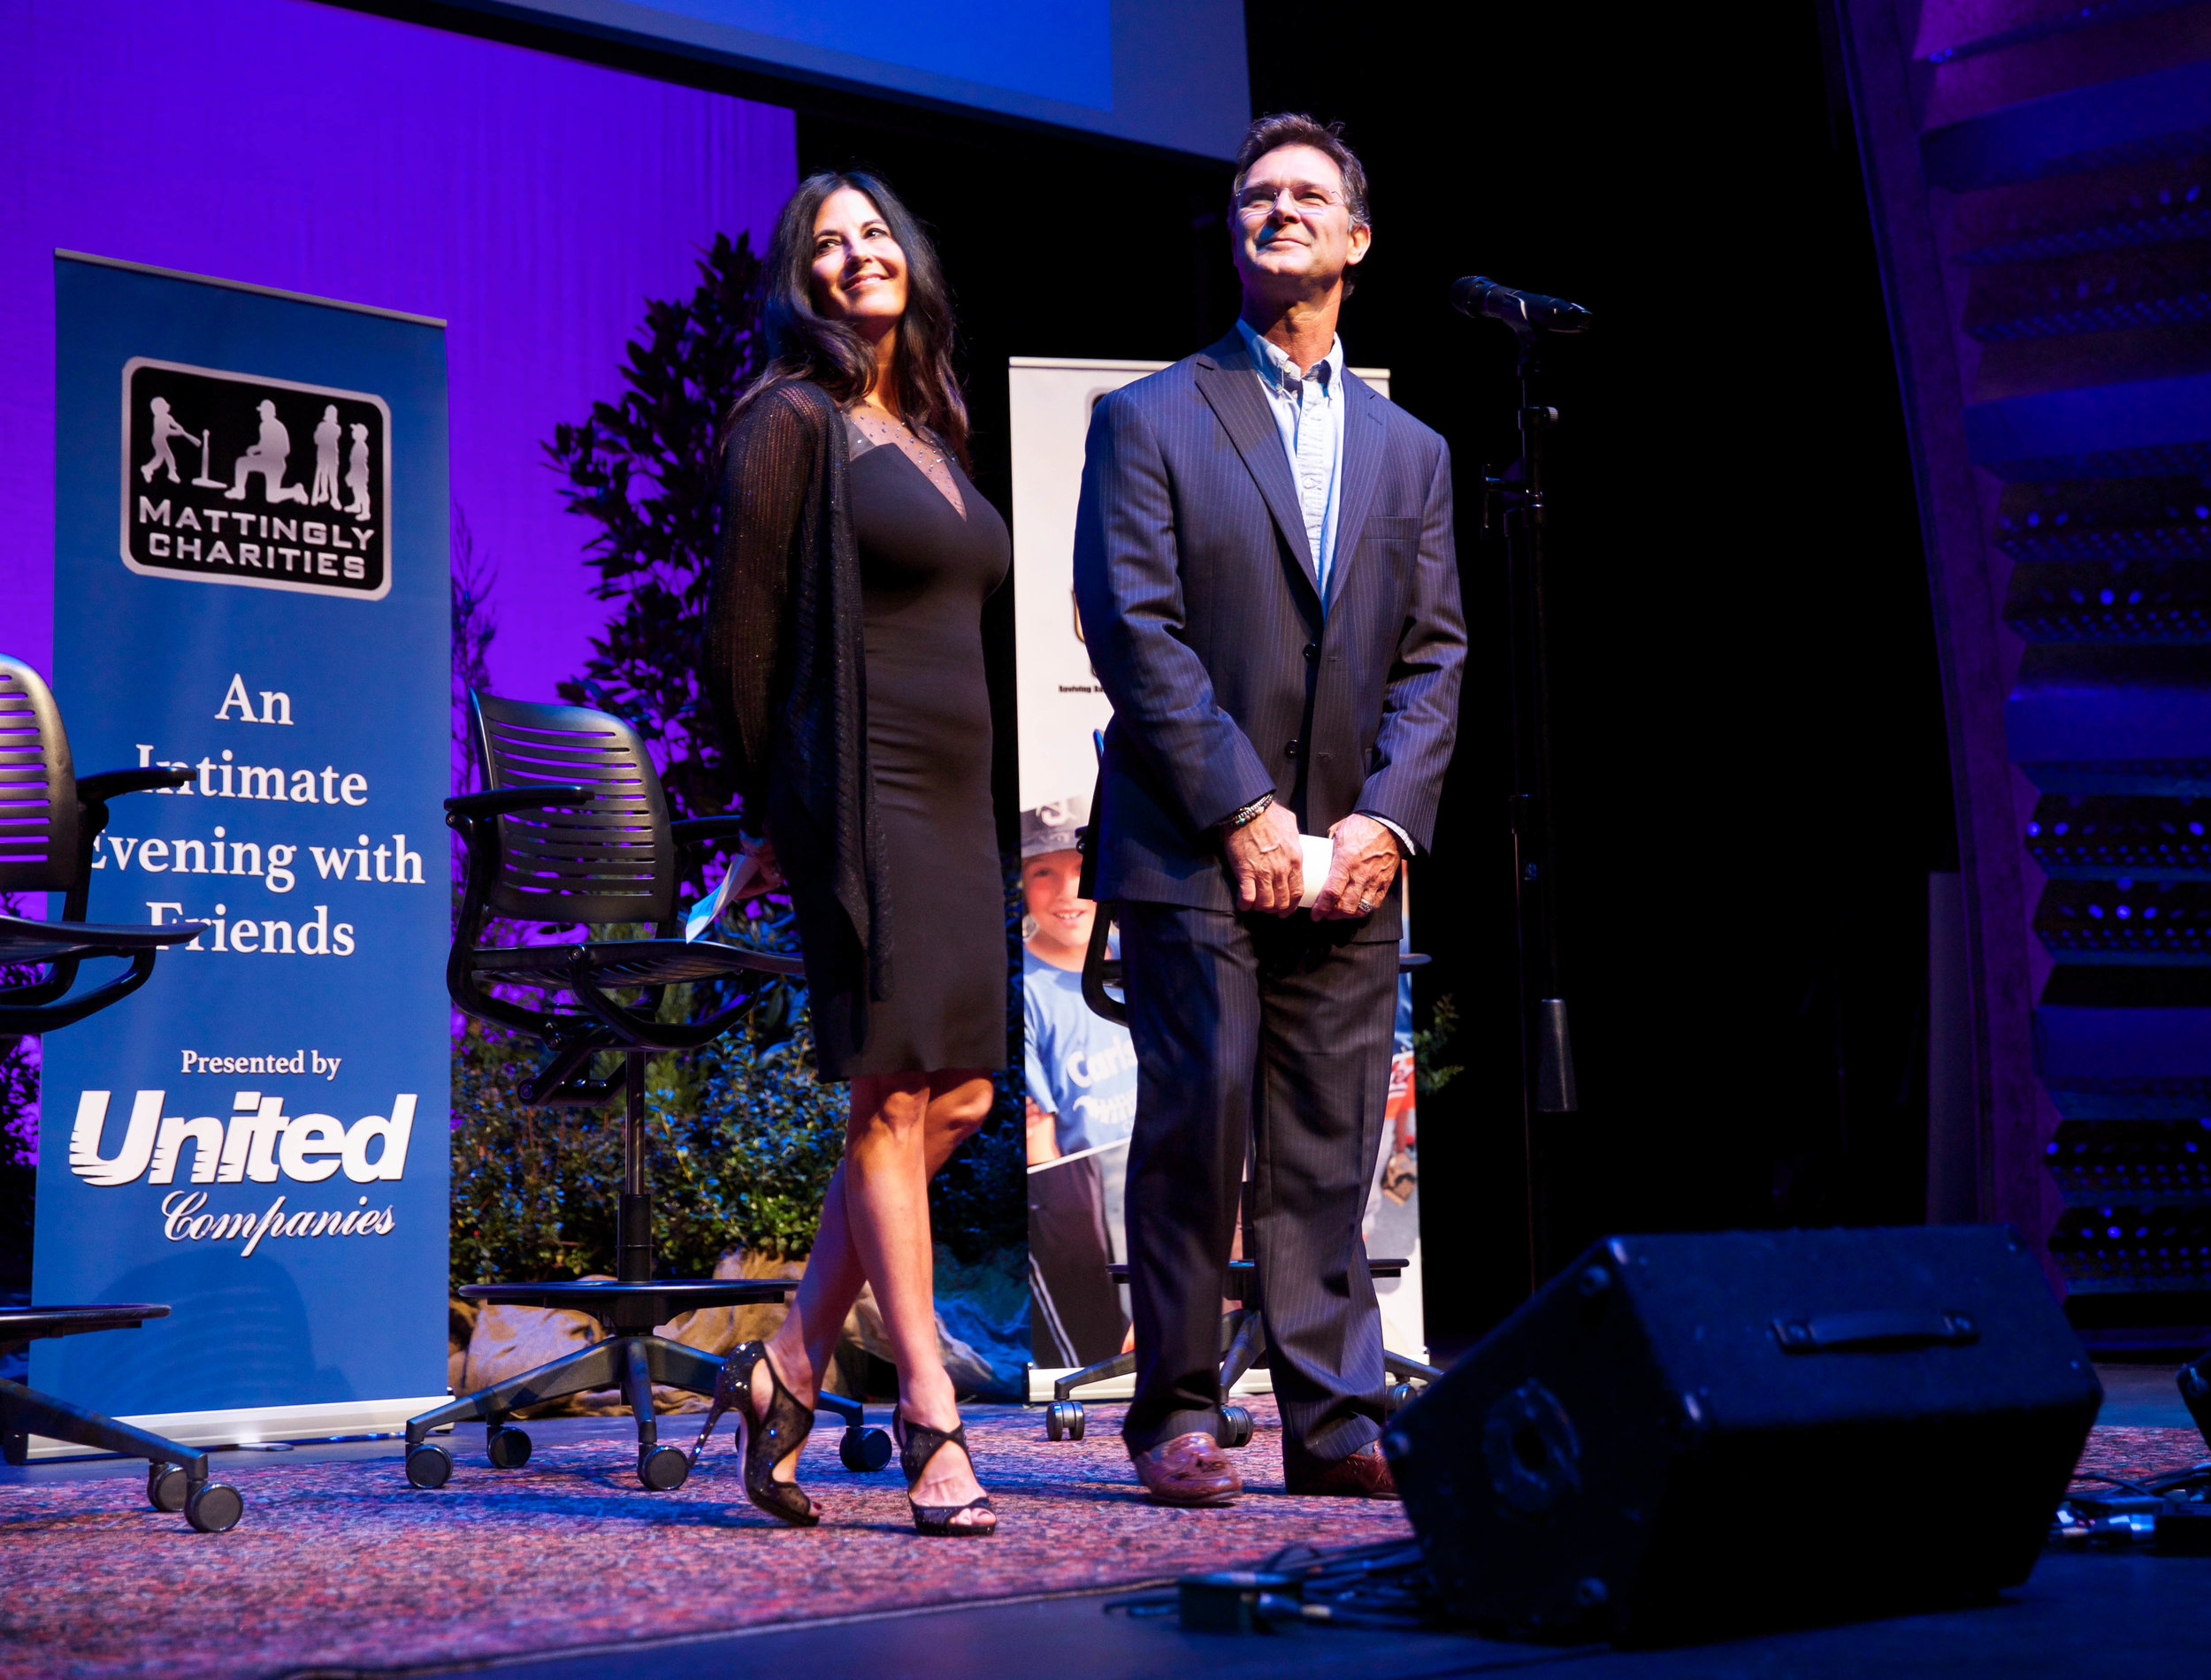 Mattingly Foundation 12-3-15 (18 of 65).jpg